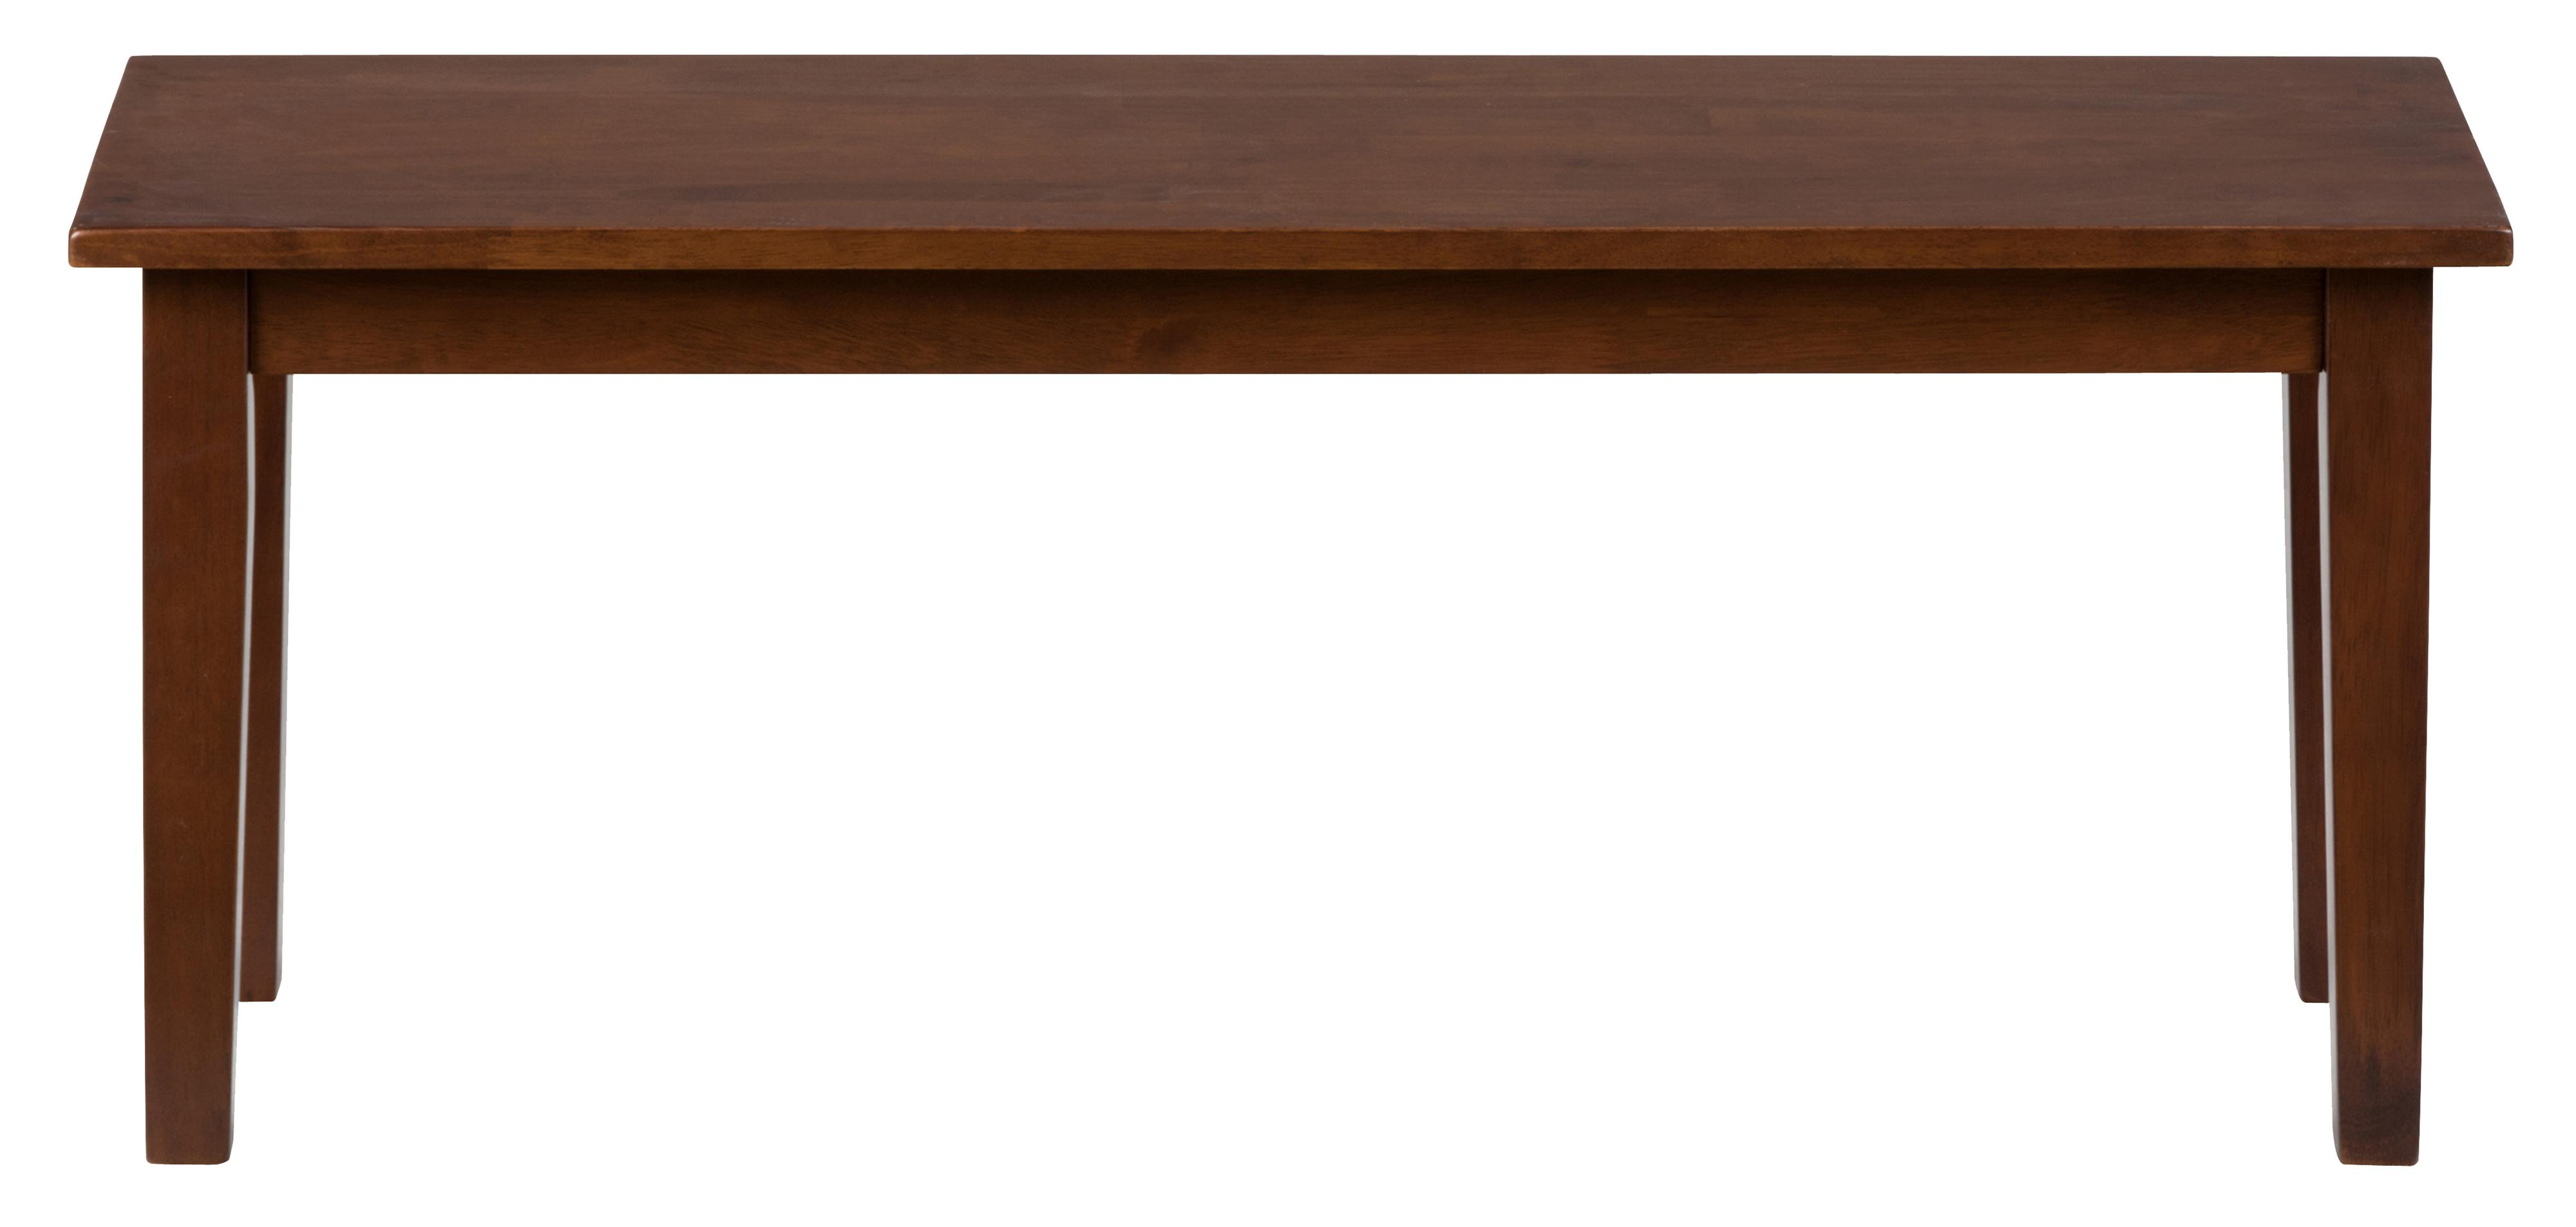 Simplicity Wooden Bench by Jofran at Godby Home Furnishings